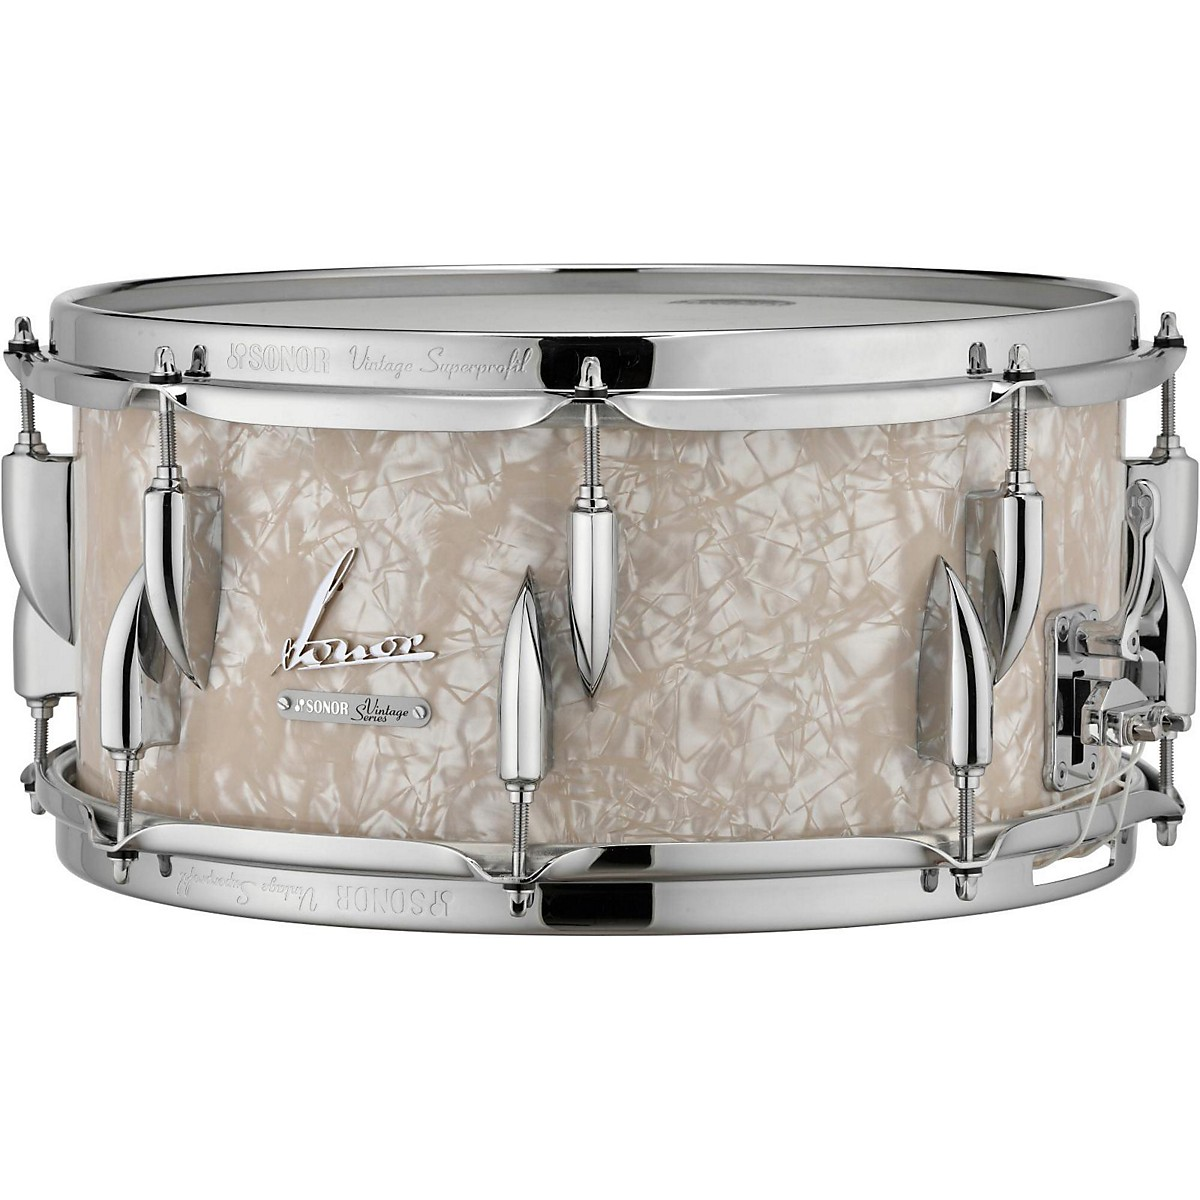 SONOR Vintage Series Snare Drum 14x6.5 in.